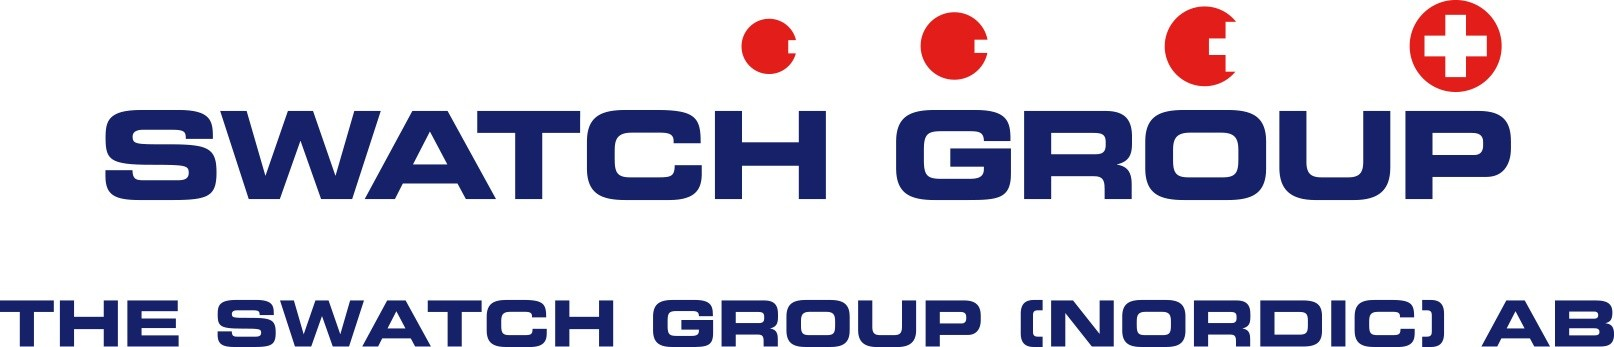 Swatch Group Nordic